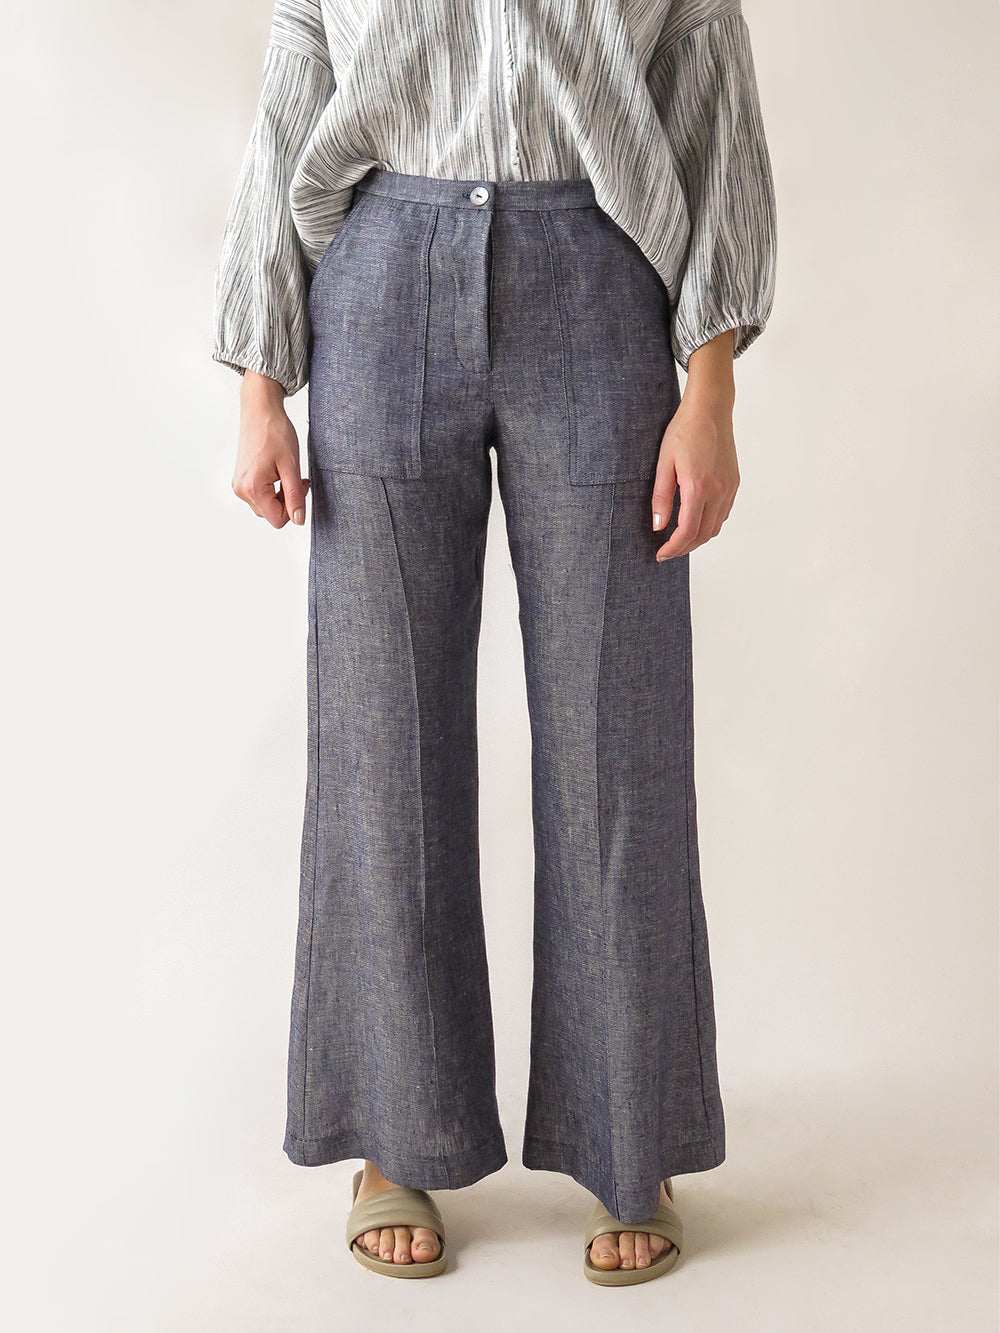 darby pant in indigo twill